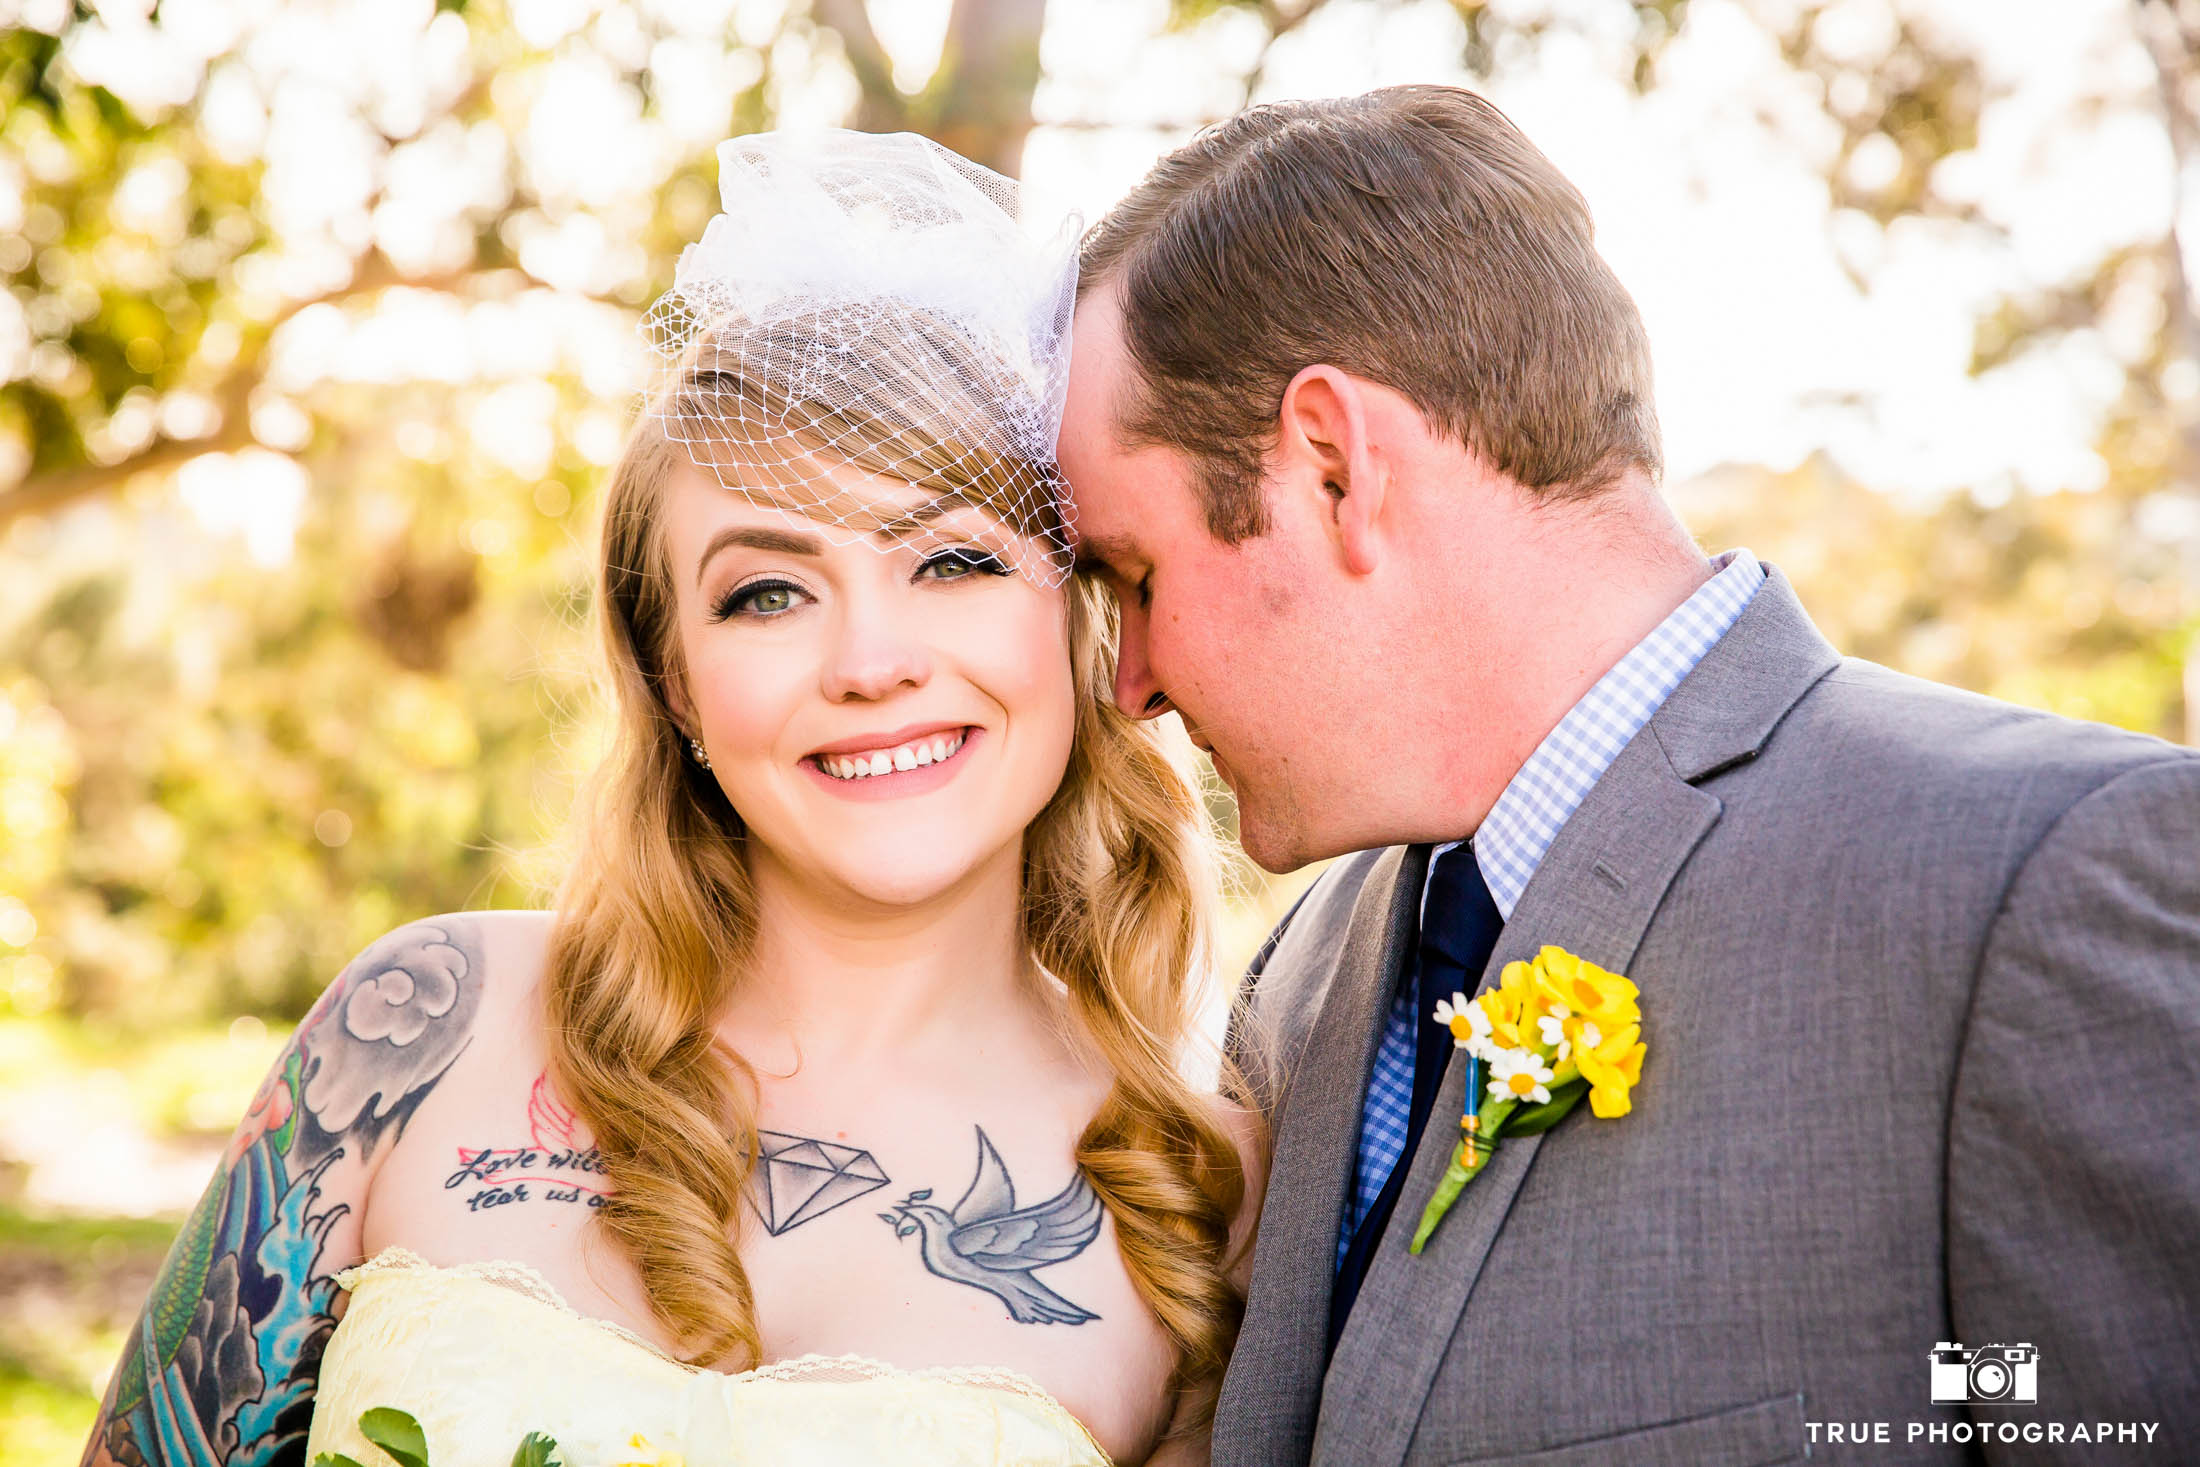 Bride and Groom touch foreheads in Balboa Park